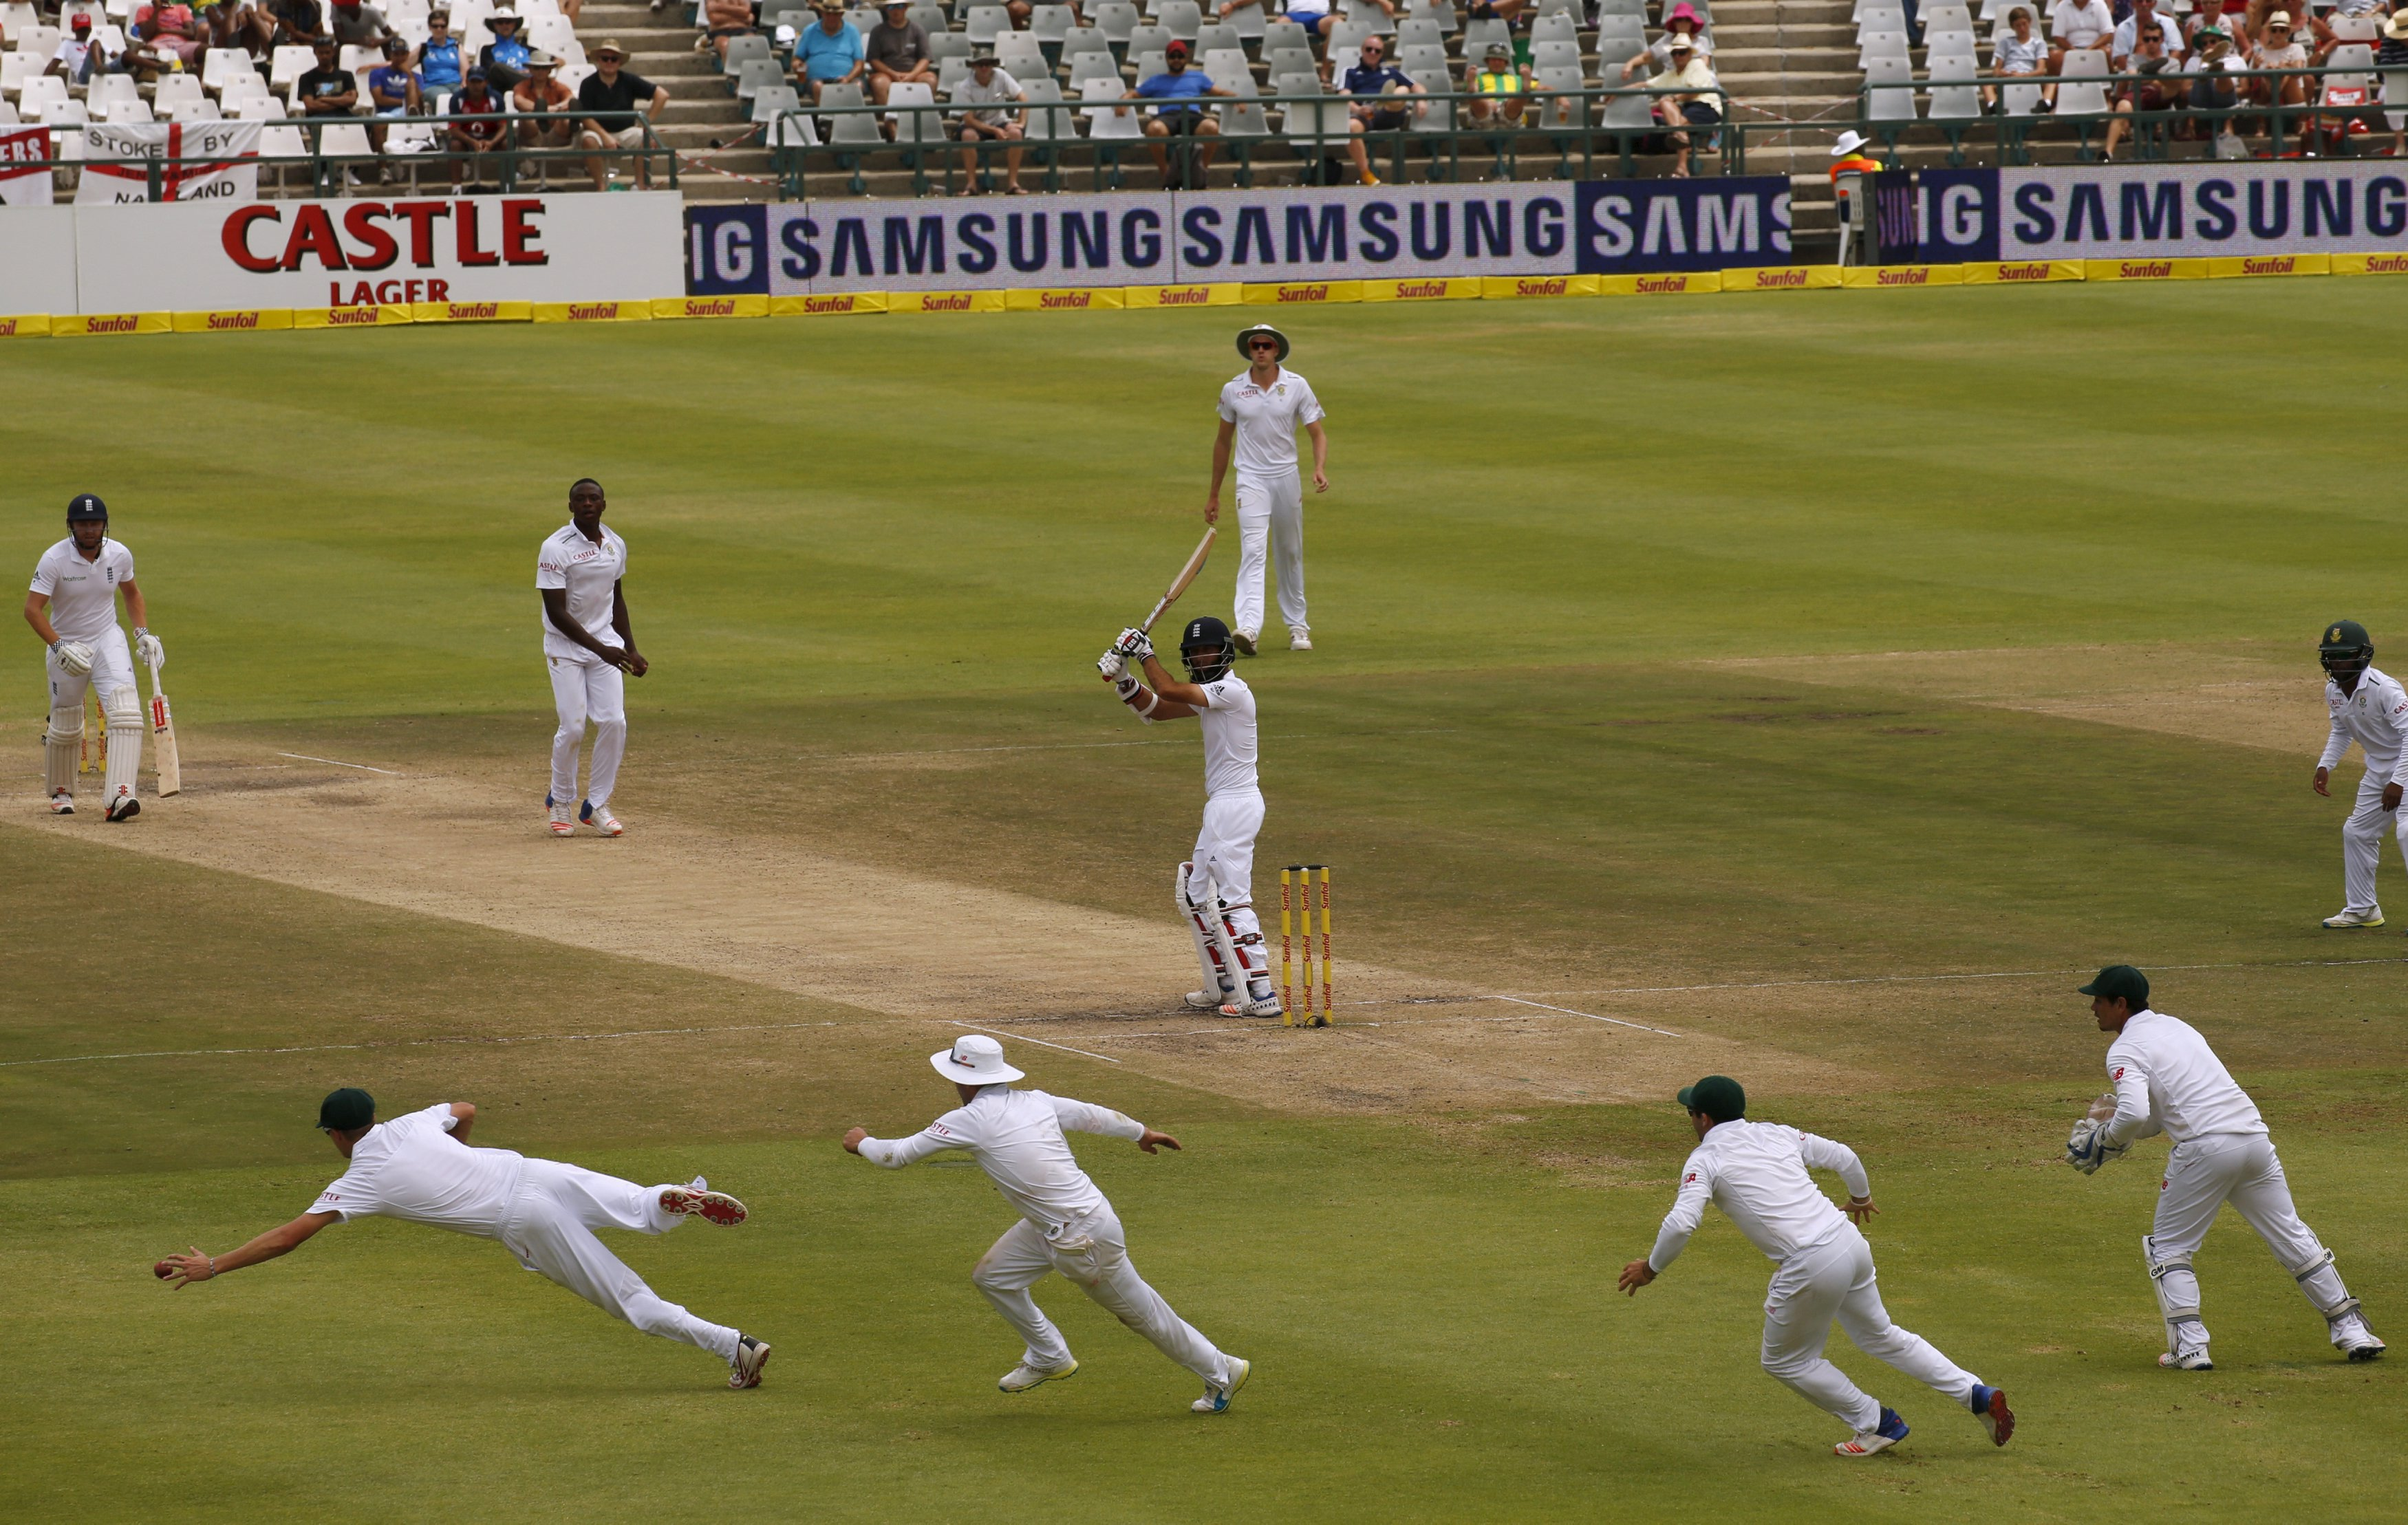 England's Moeen Ali watches as South Africa's Chris Morris (L) drops a catch during the second cricket test match in Cape Town, South Africa, January 6, 2016. Photo: Reuters